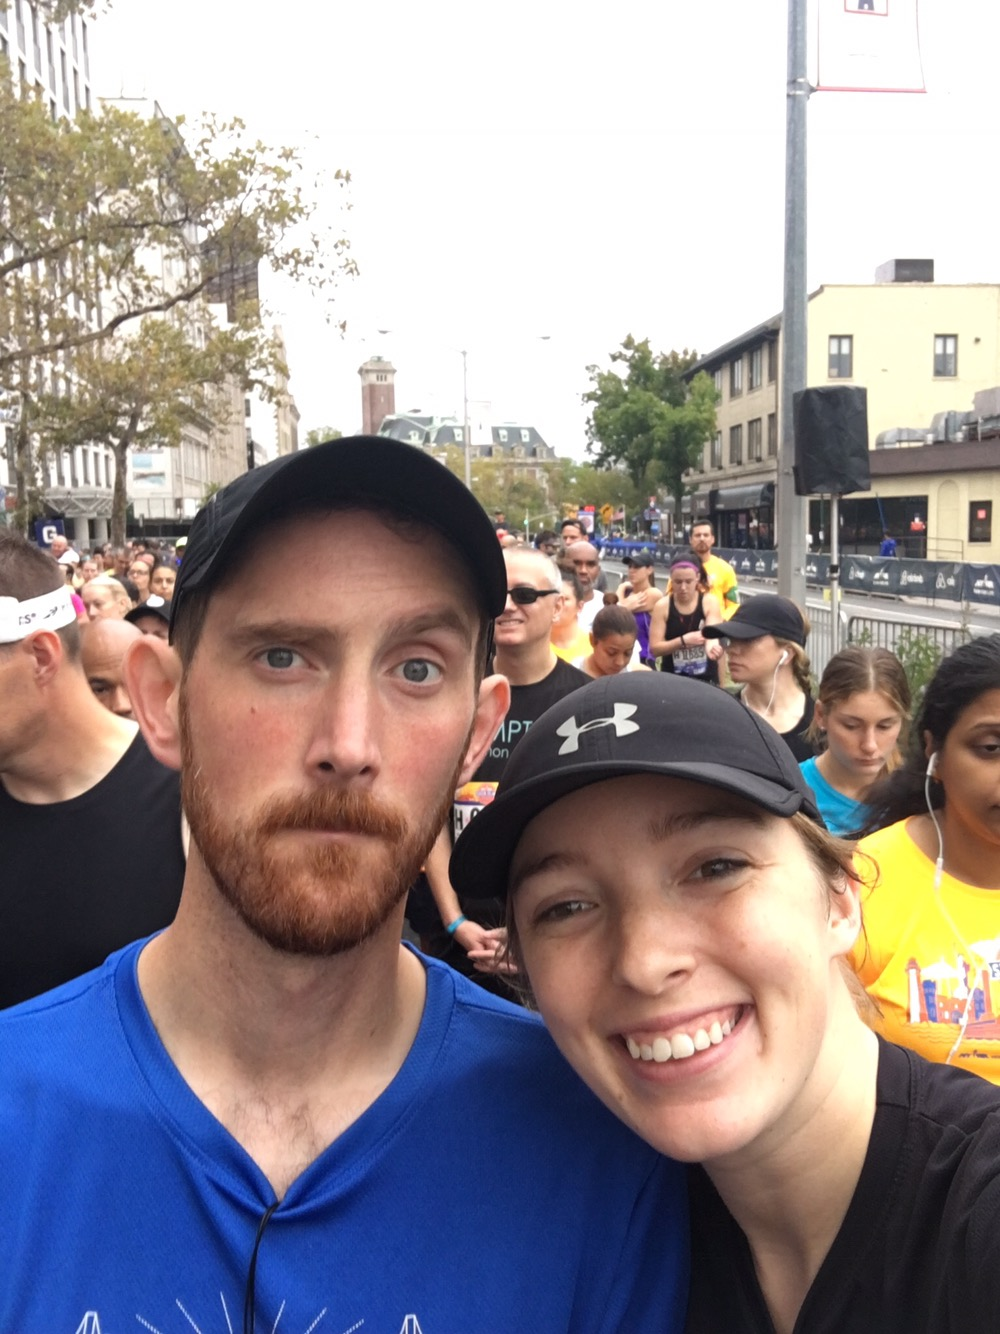 The Mister and I at the start line corral at the NYRR Staten Island Half Marathon